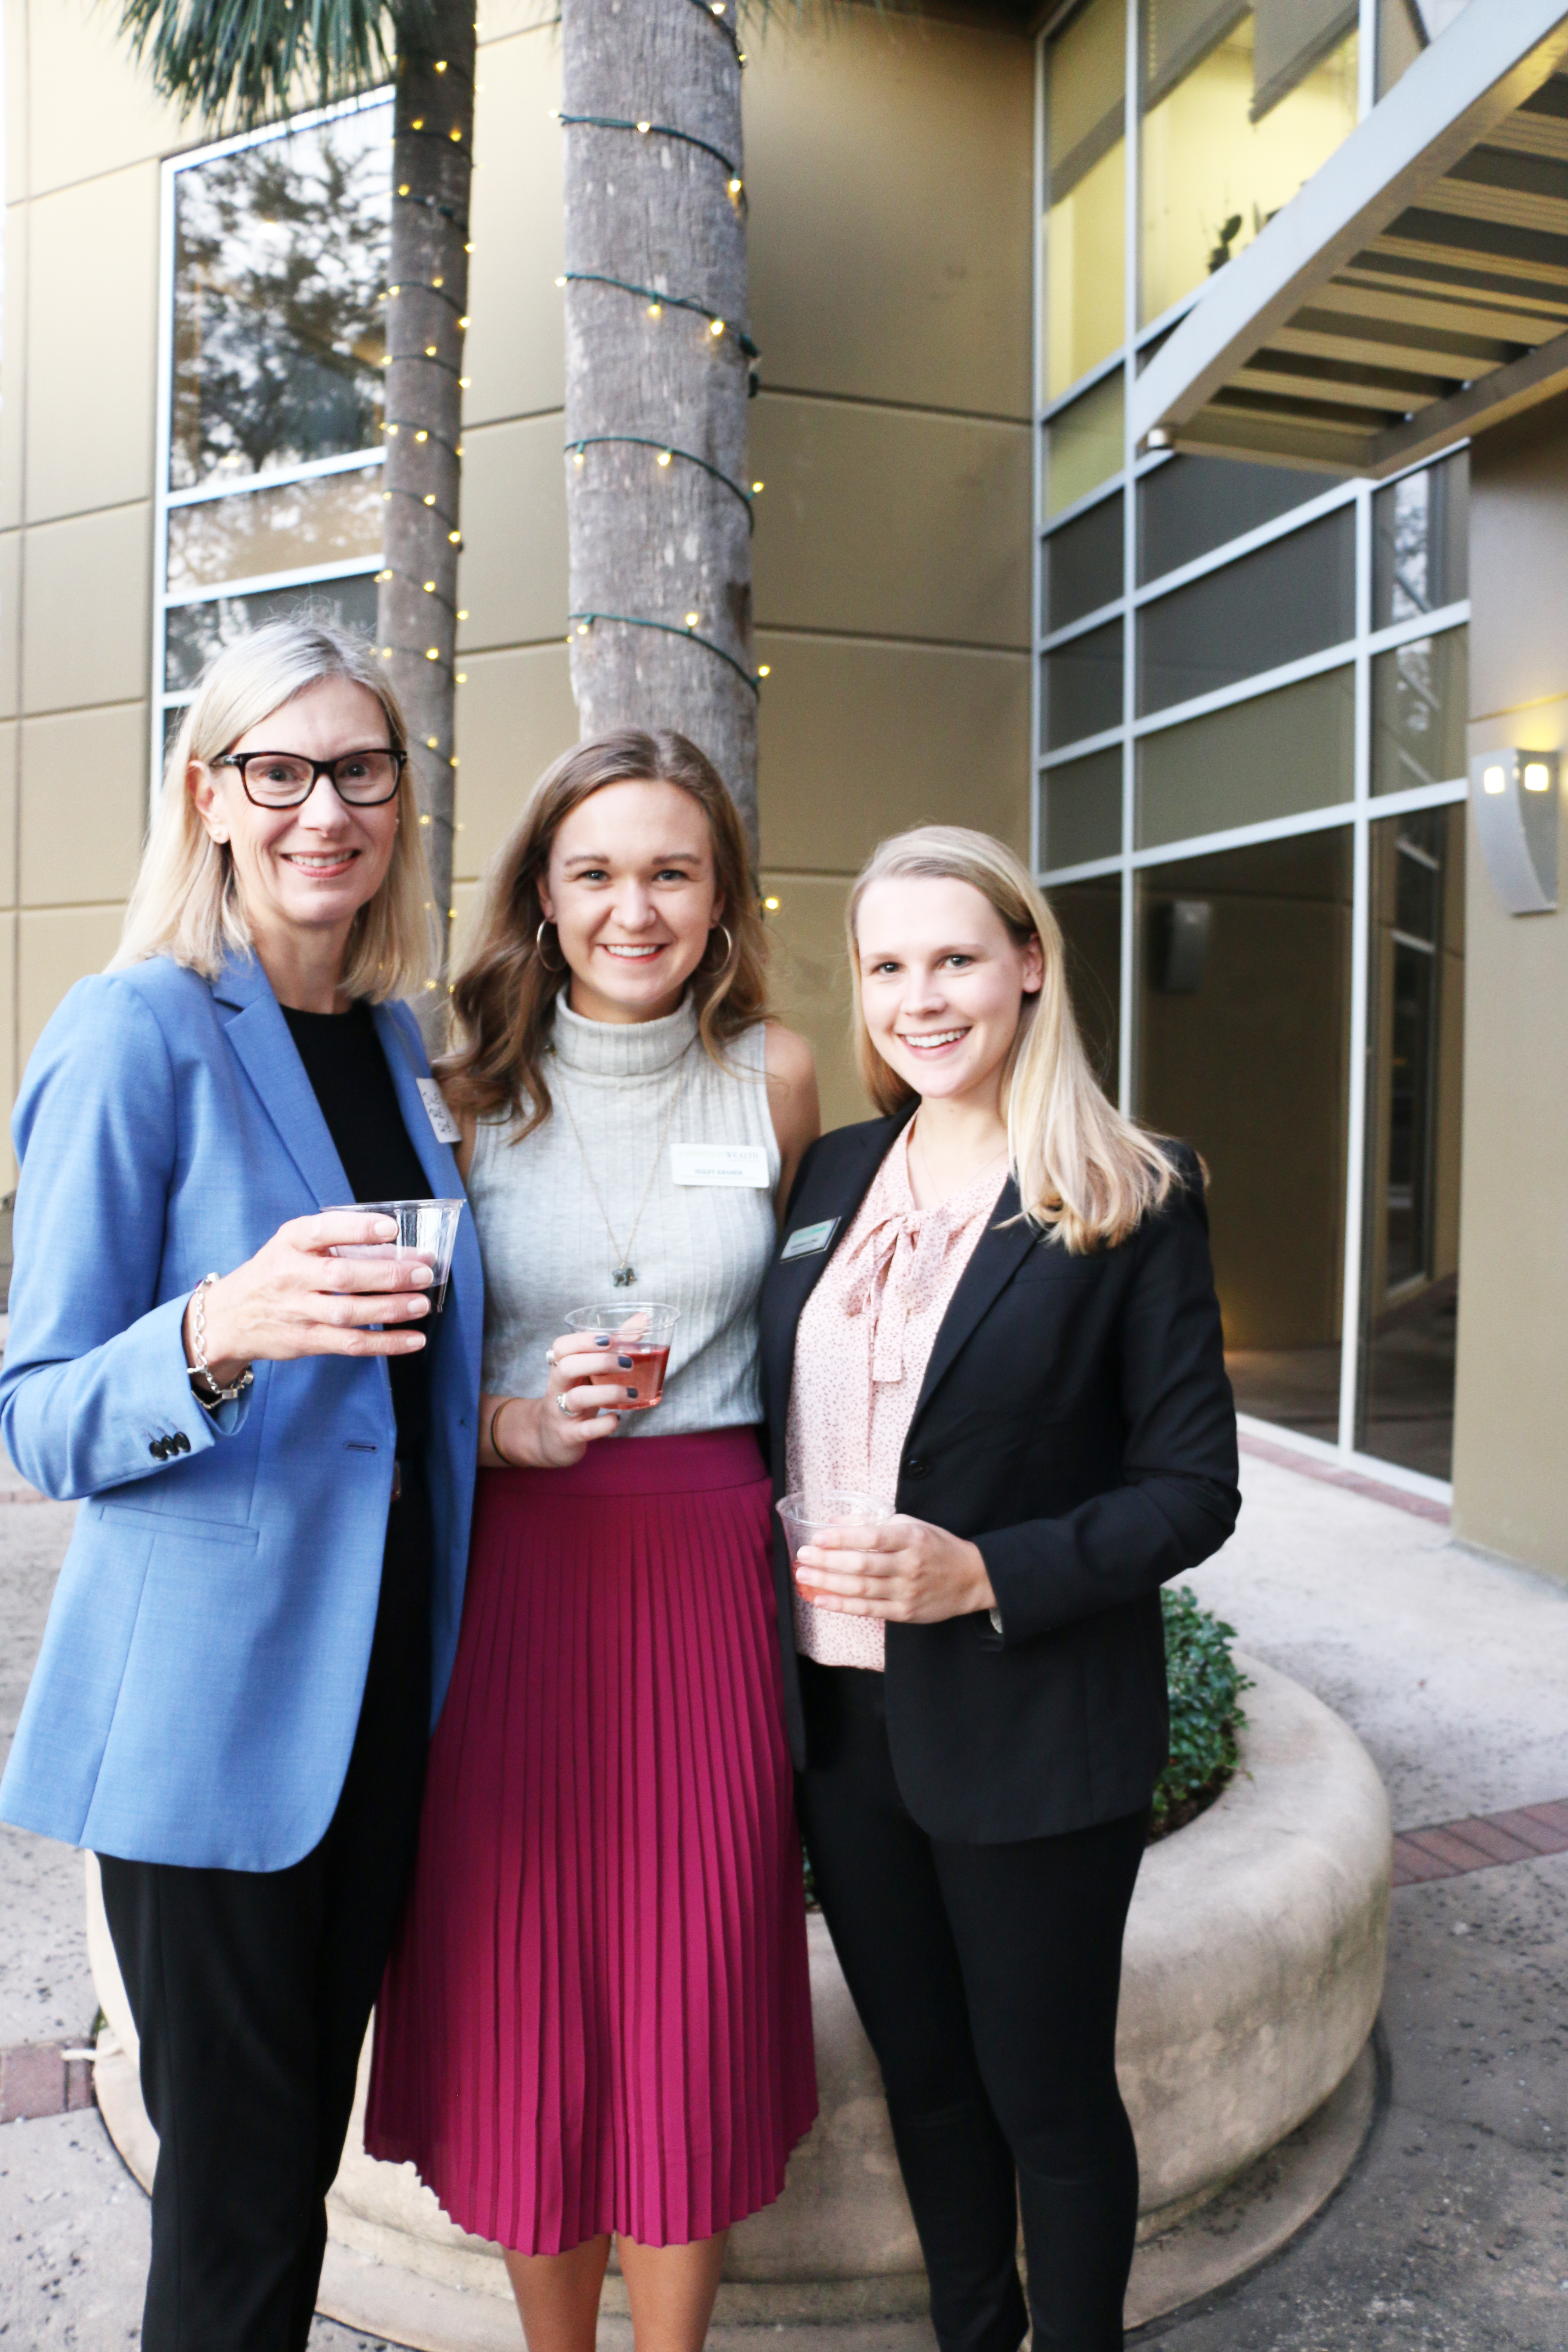 Julie Regenold of Trade Gate Finance, Haley Kramer of Commonwealth Financial, and Hannah Long of Edward Jones are the organizers of the AWE Networking Group on Daniel Island.